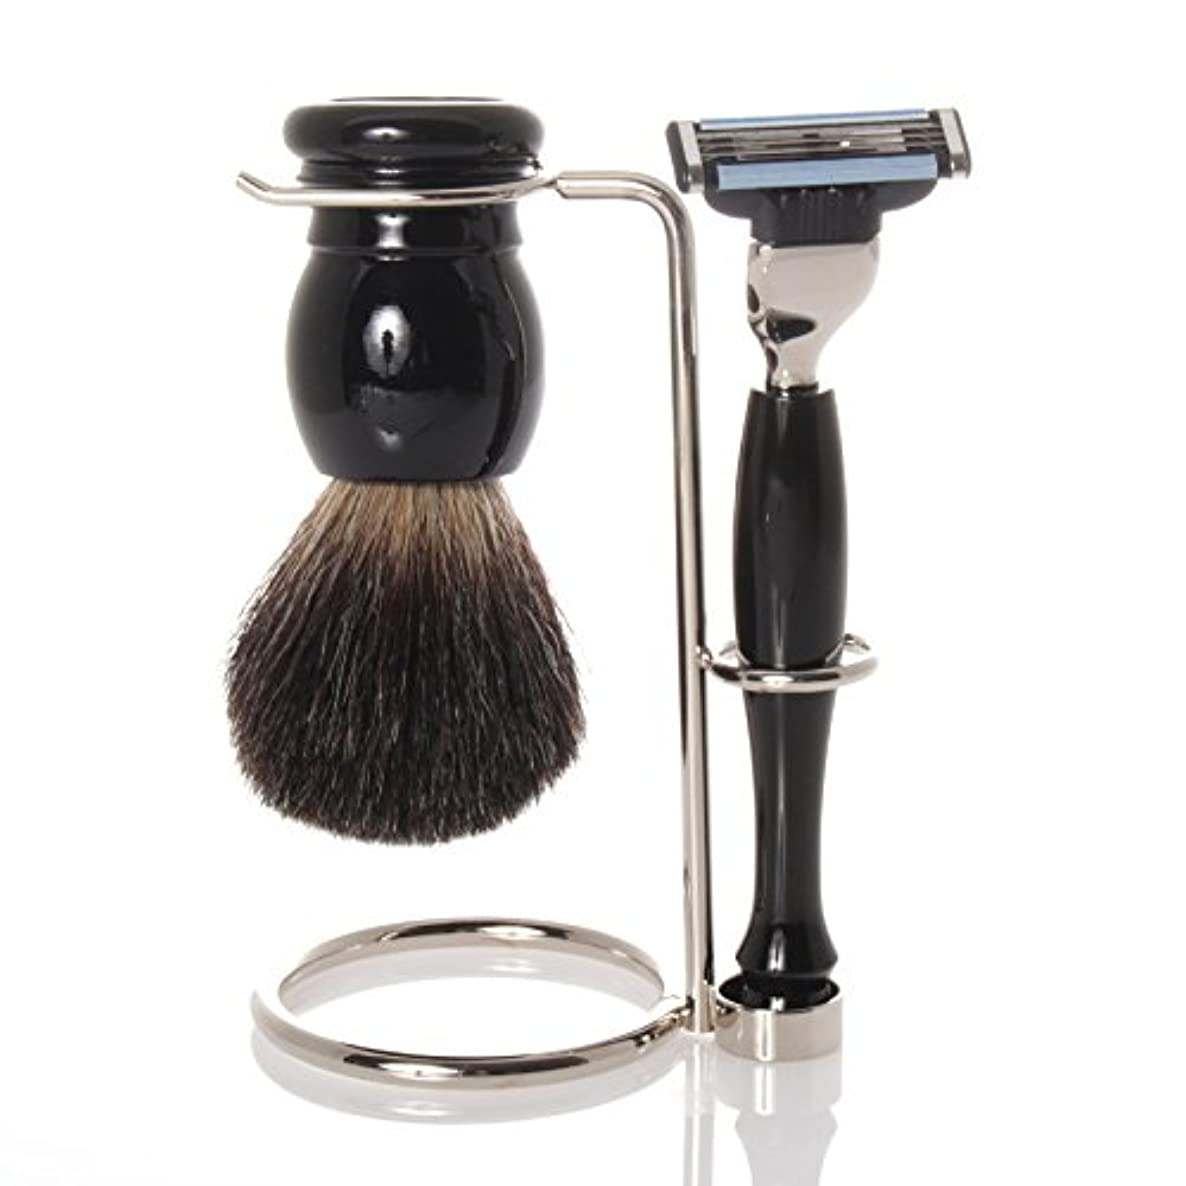 コピー町バンクShaving set with holder, grey badger brush, razor - Hans Baier Exclusive